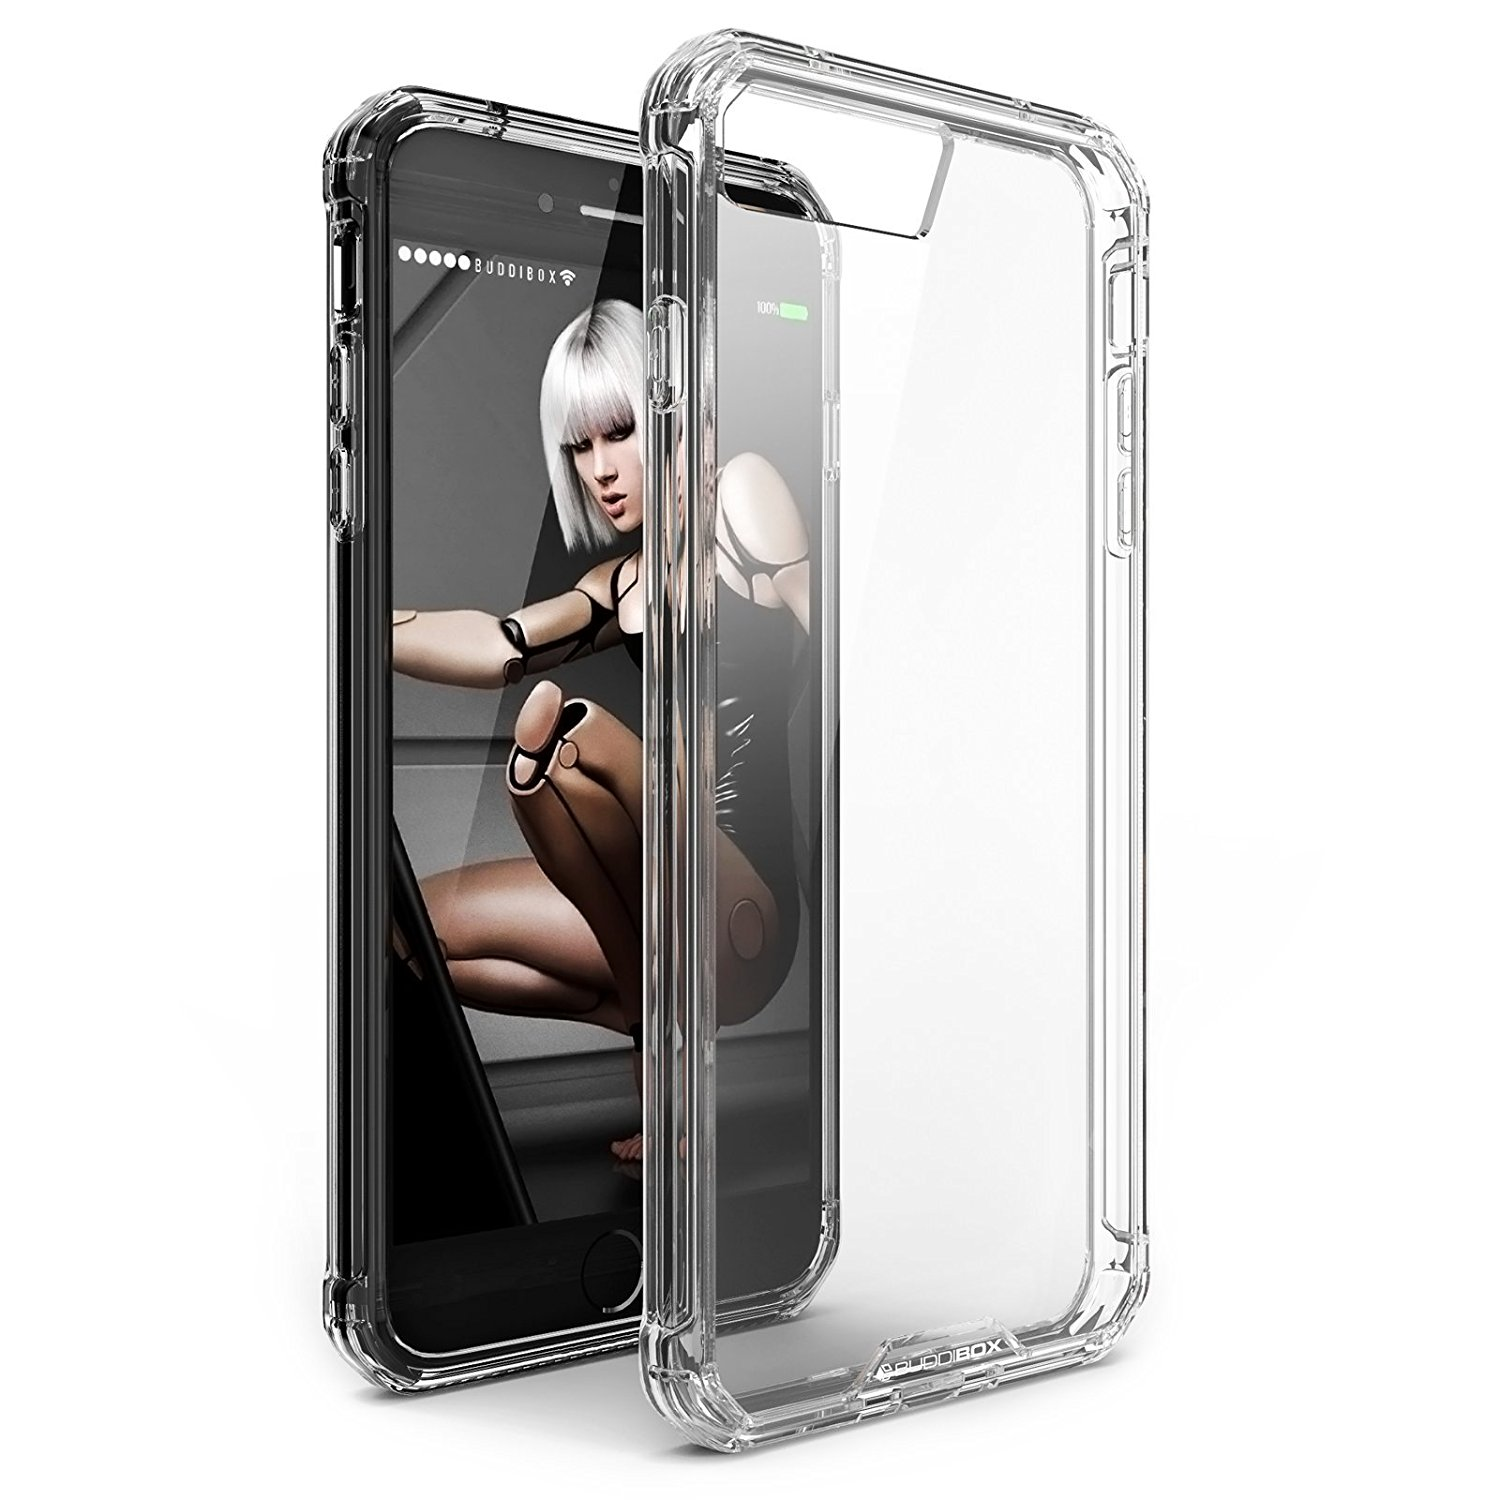 BUDDIBOX iPhone 7 Plus Case / iPhone 8 Plus Case [ICE] Scratch Resistant Clear Bumper Phone Cover Case for Apple iPhone 7 Plus and iPhone 8 Plus